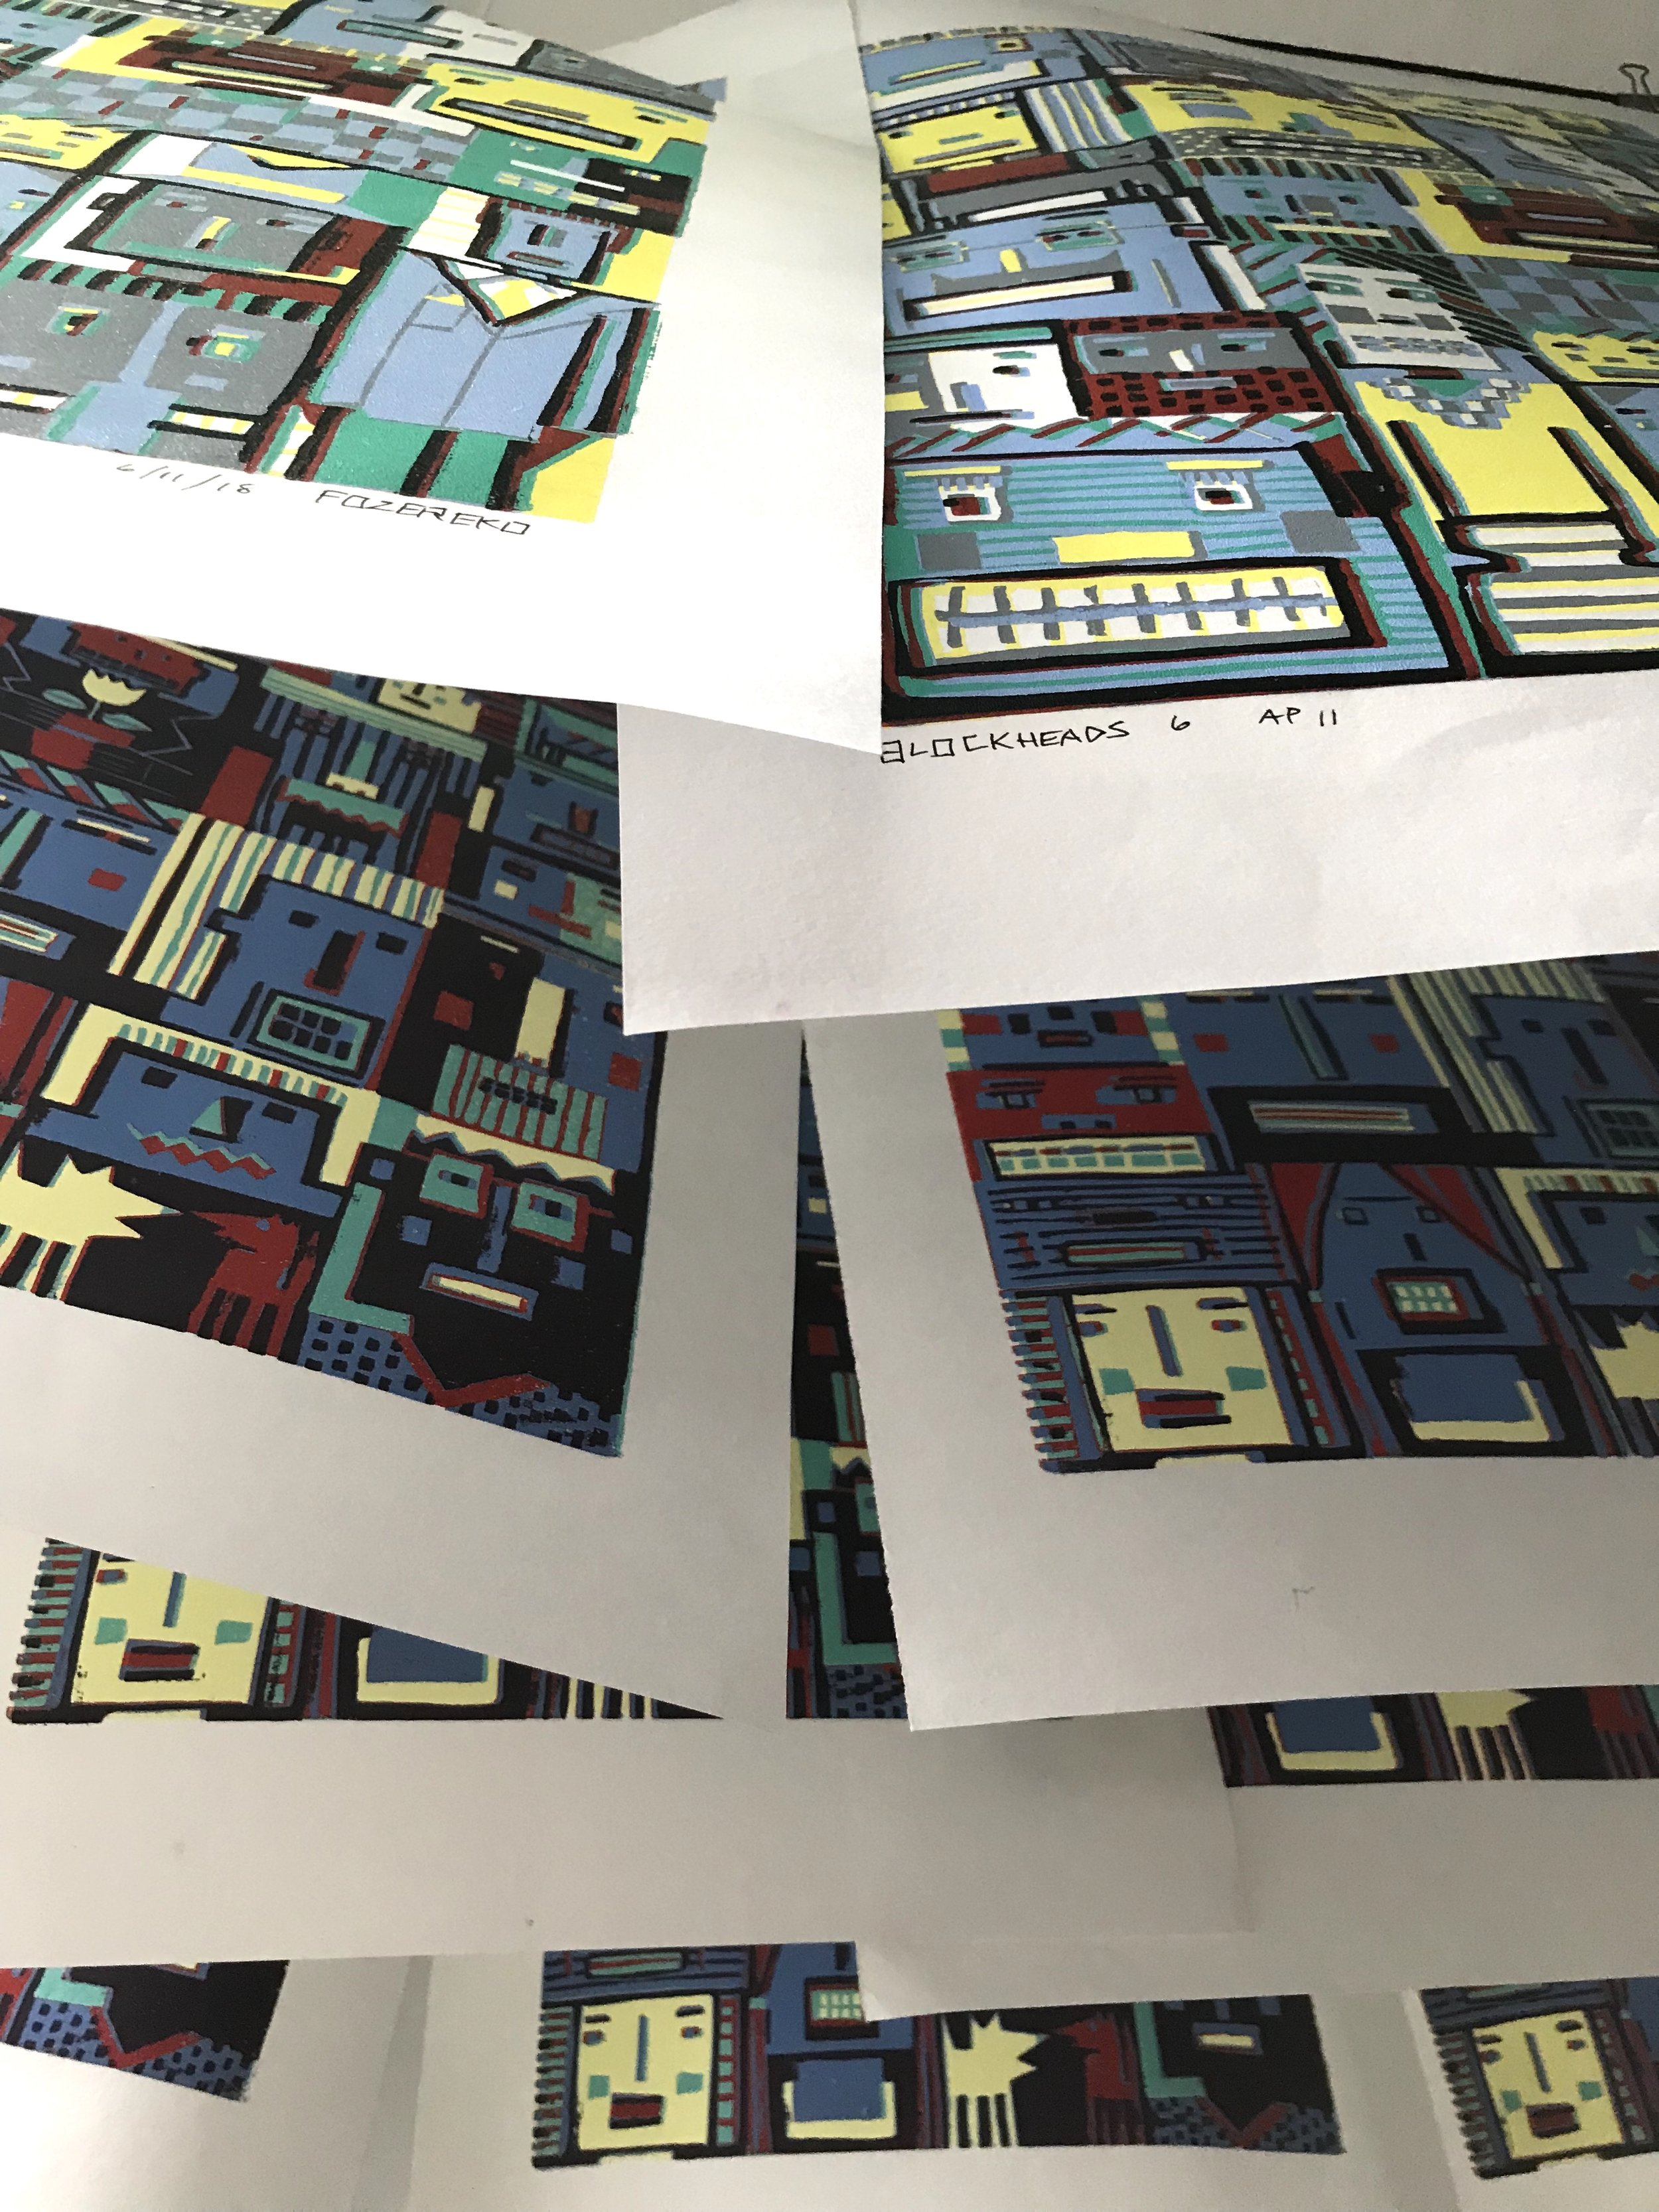 "Taken this morning in the Office room - an under-view of a laundry line of drying prints. I used Caligo inks on these prints and have at least five layers/passes on each, consequently these are taking forever to dry completely. They will remain in this situation until they aren't tacky to the touch anymore. Don't know when that will be but currently they are out of the way and I can ignore them.  The prints don't stain or smear when touched but they ""stick"" together when stacked on top of each other, making a very scary noise when separated. This happens even with a separator sheet in between each print."